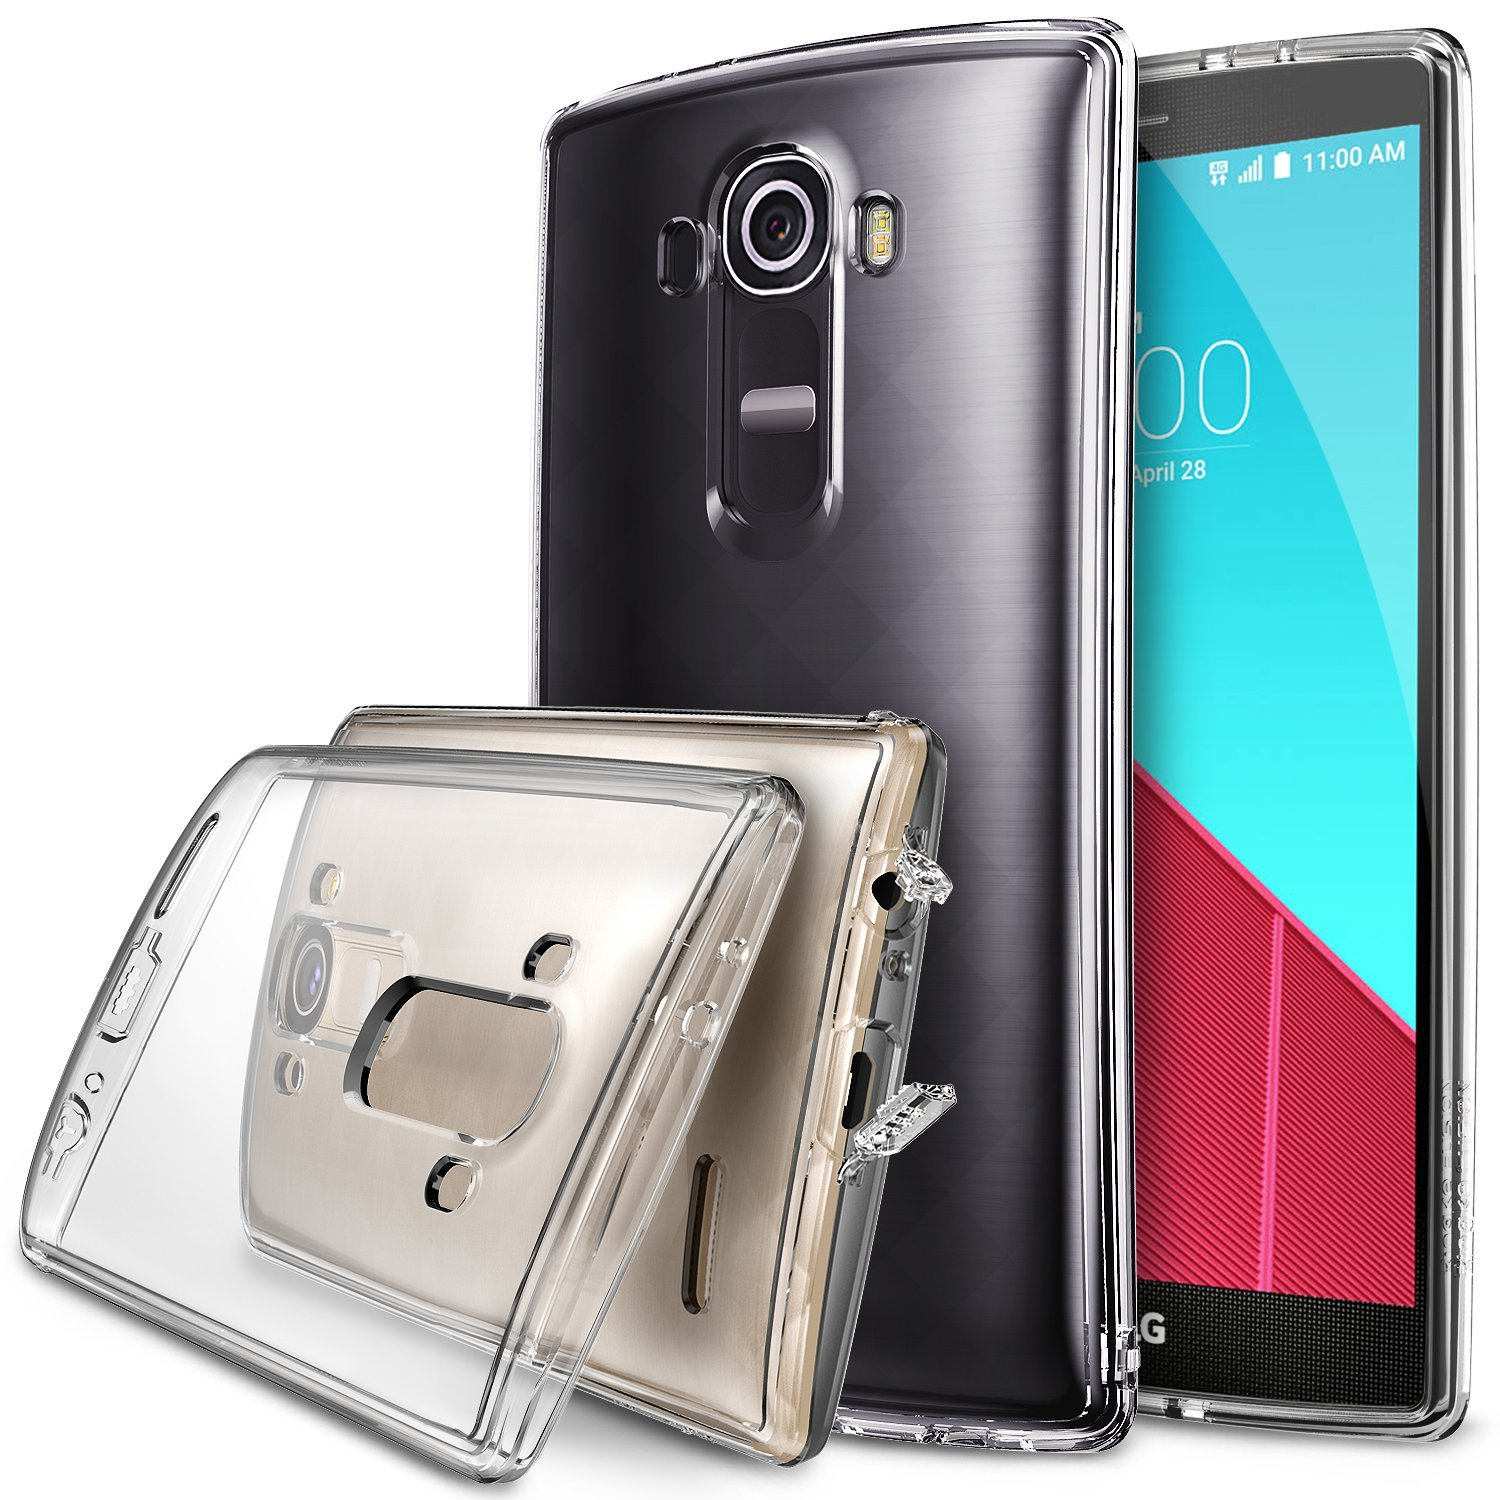 LG G4 Case, Ringke [Clear] FUSION Series Back Bumper Case w/ Free Screen Protector